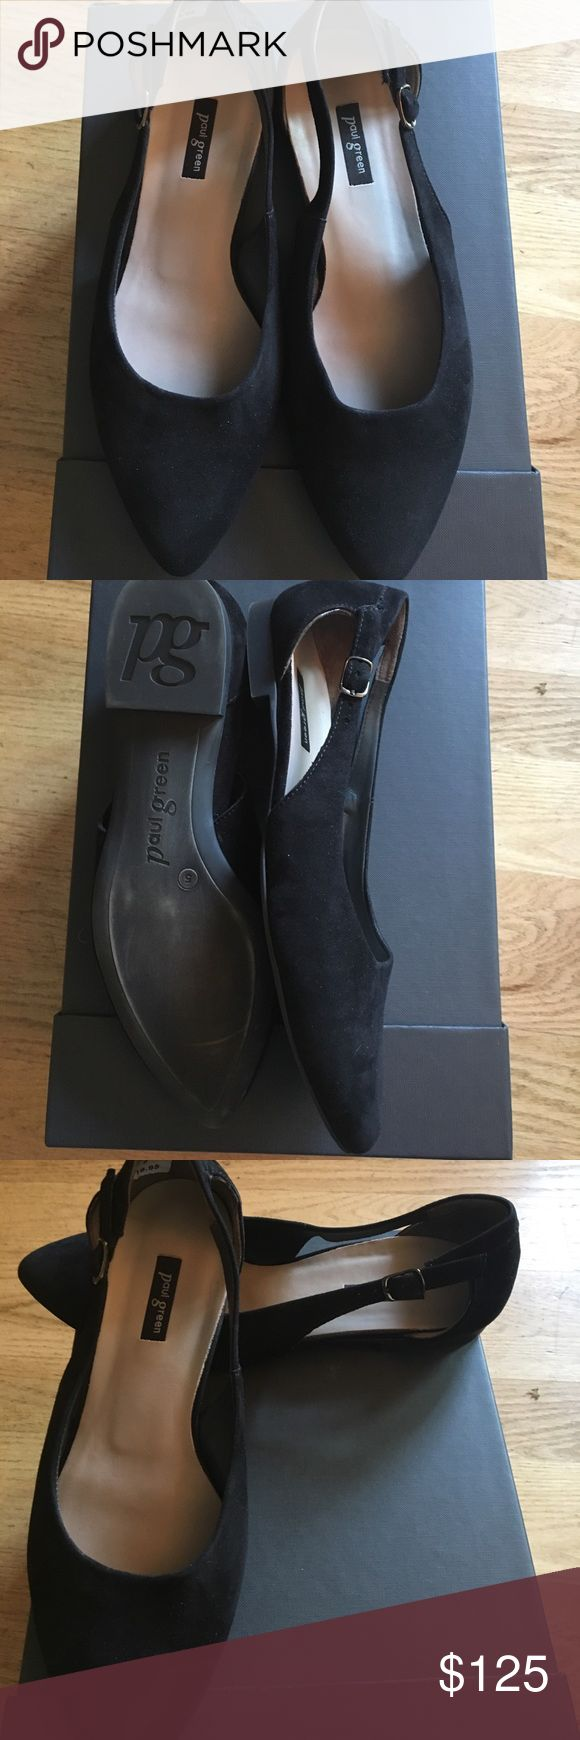 Paul Green black suede flats. Barely worn . Barely worn Paul Green black suede flat shoes. Excellent condition. Size 8 (European size 5). Sizing is in the small side - may fit a 7.5. Paul Green Shoes Flats & Loafers